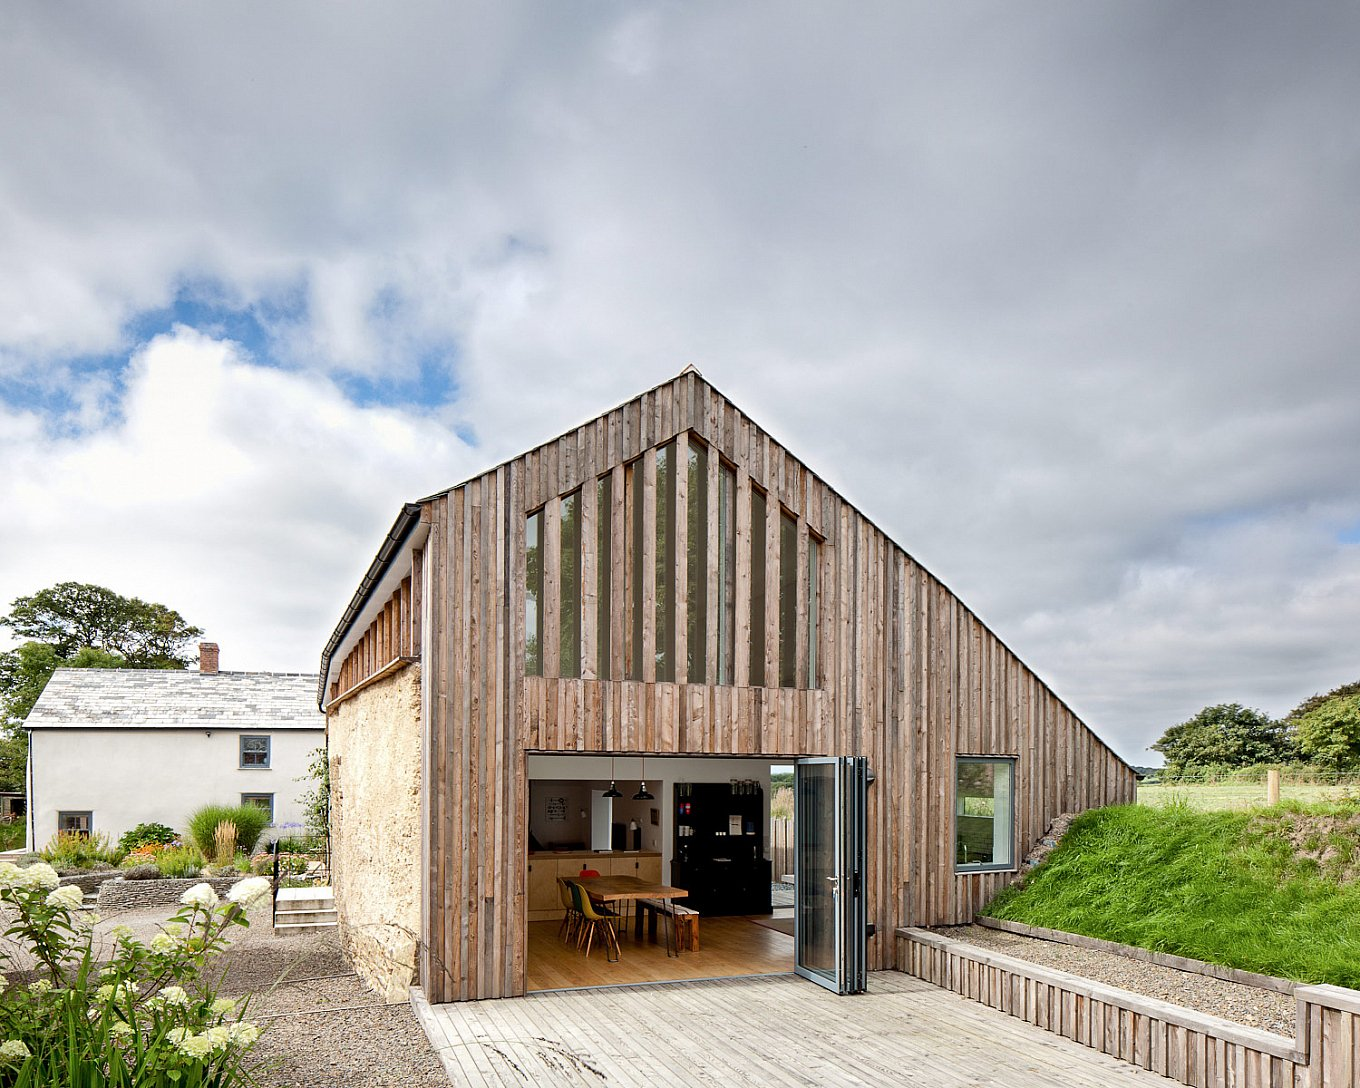 barn-conversion-inspiration-united-kingdom-gessato-10